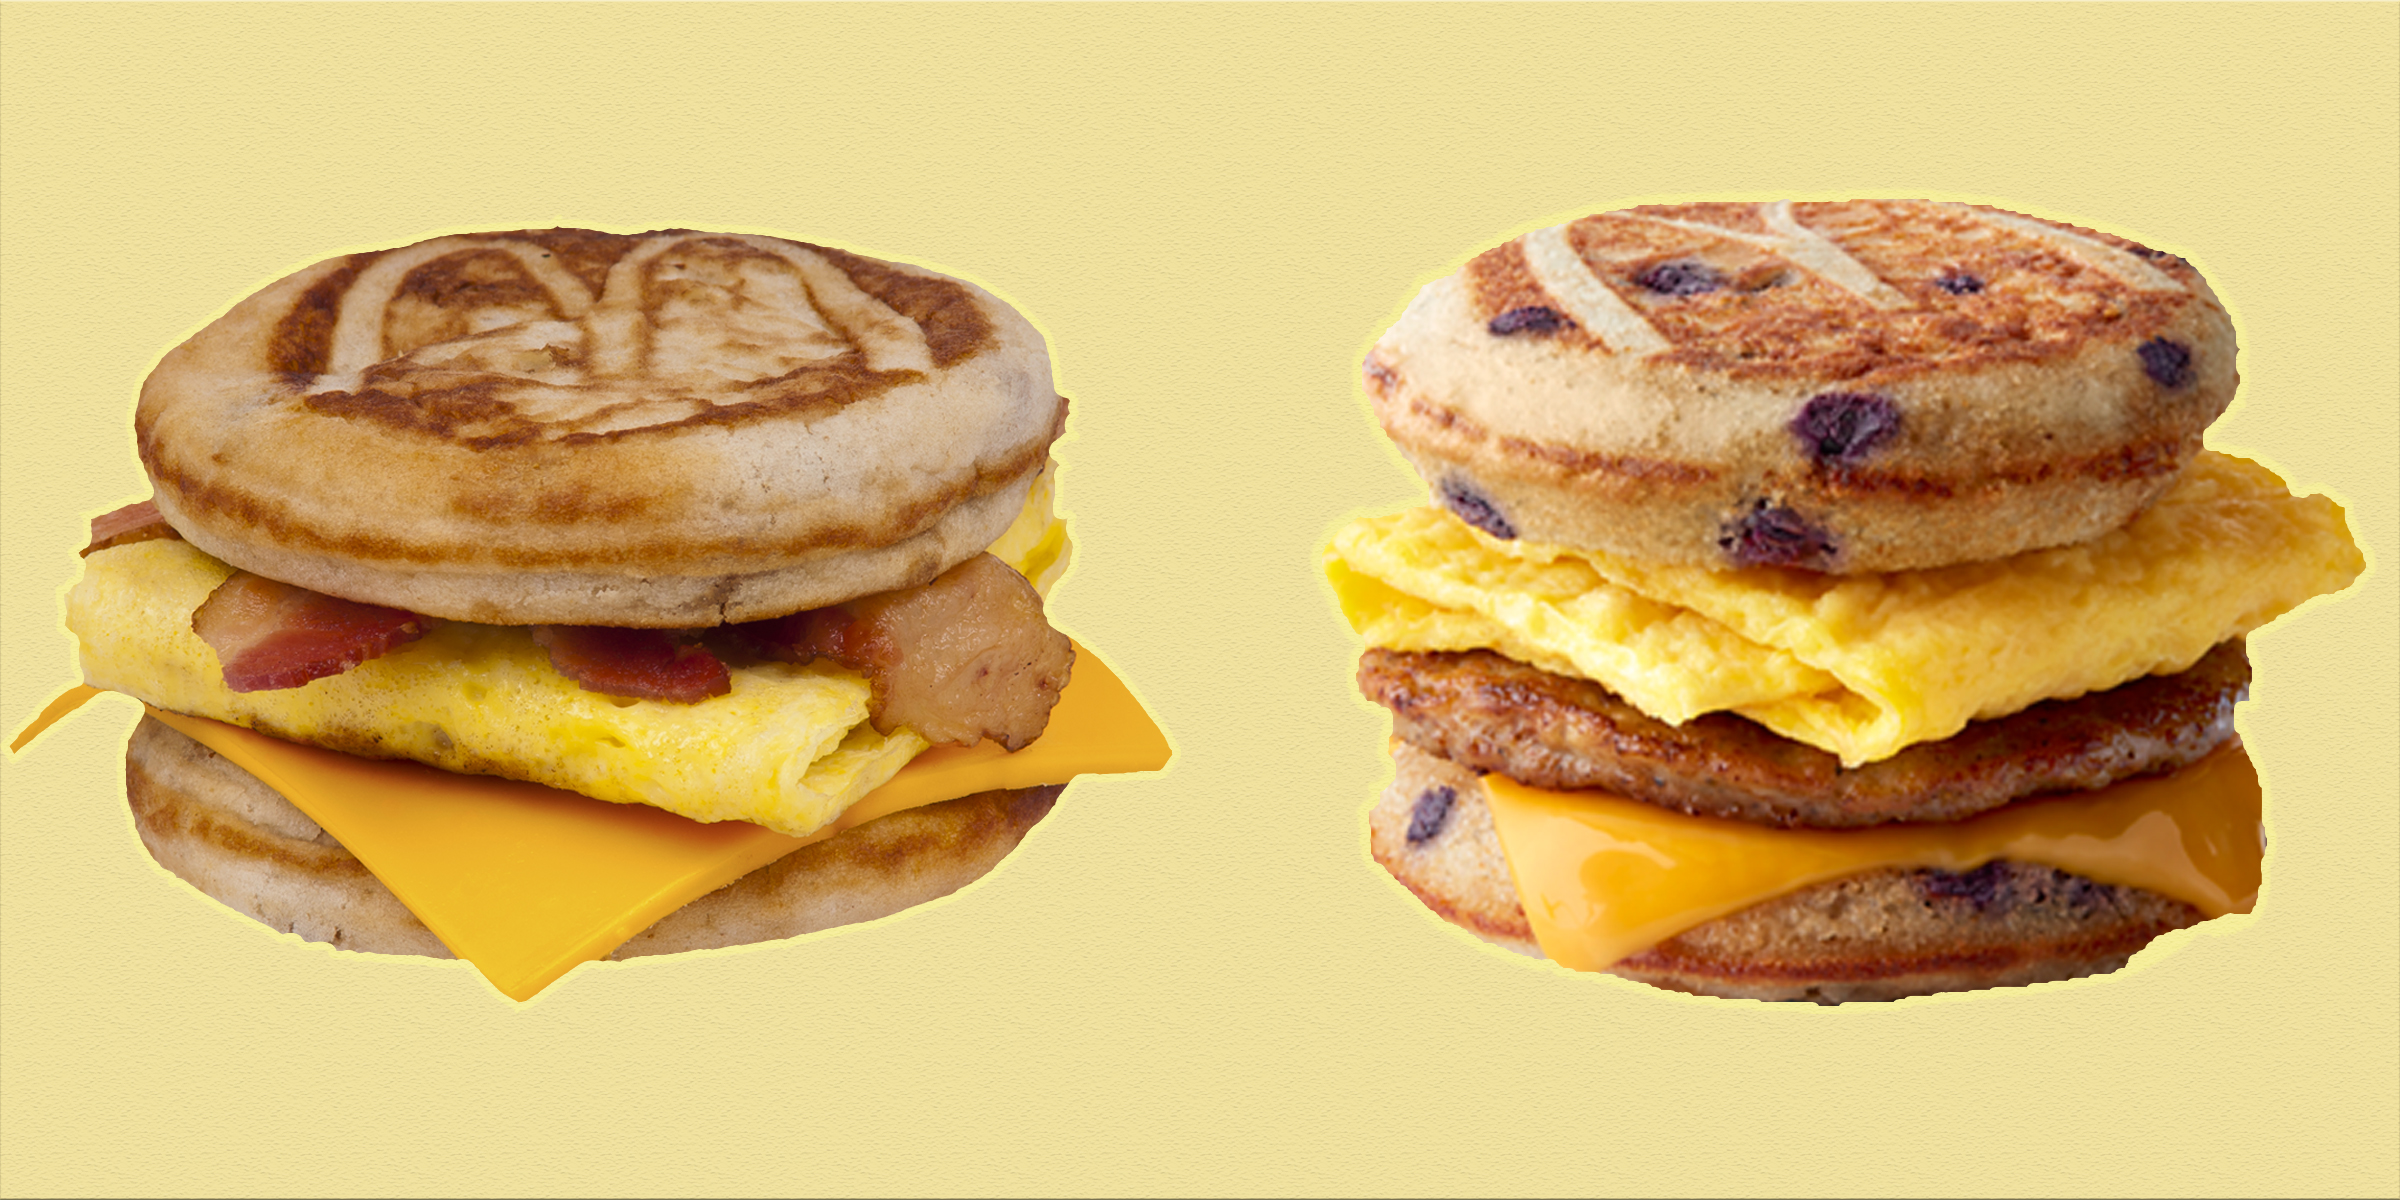 McDonald's just launched a new blueberry pancake McGriddles